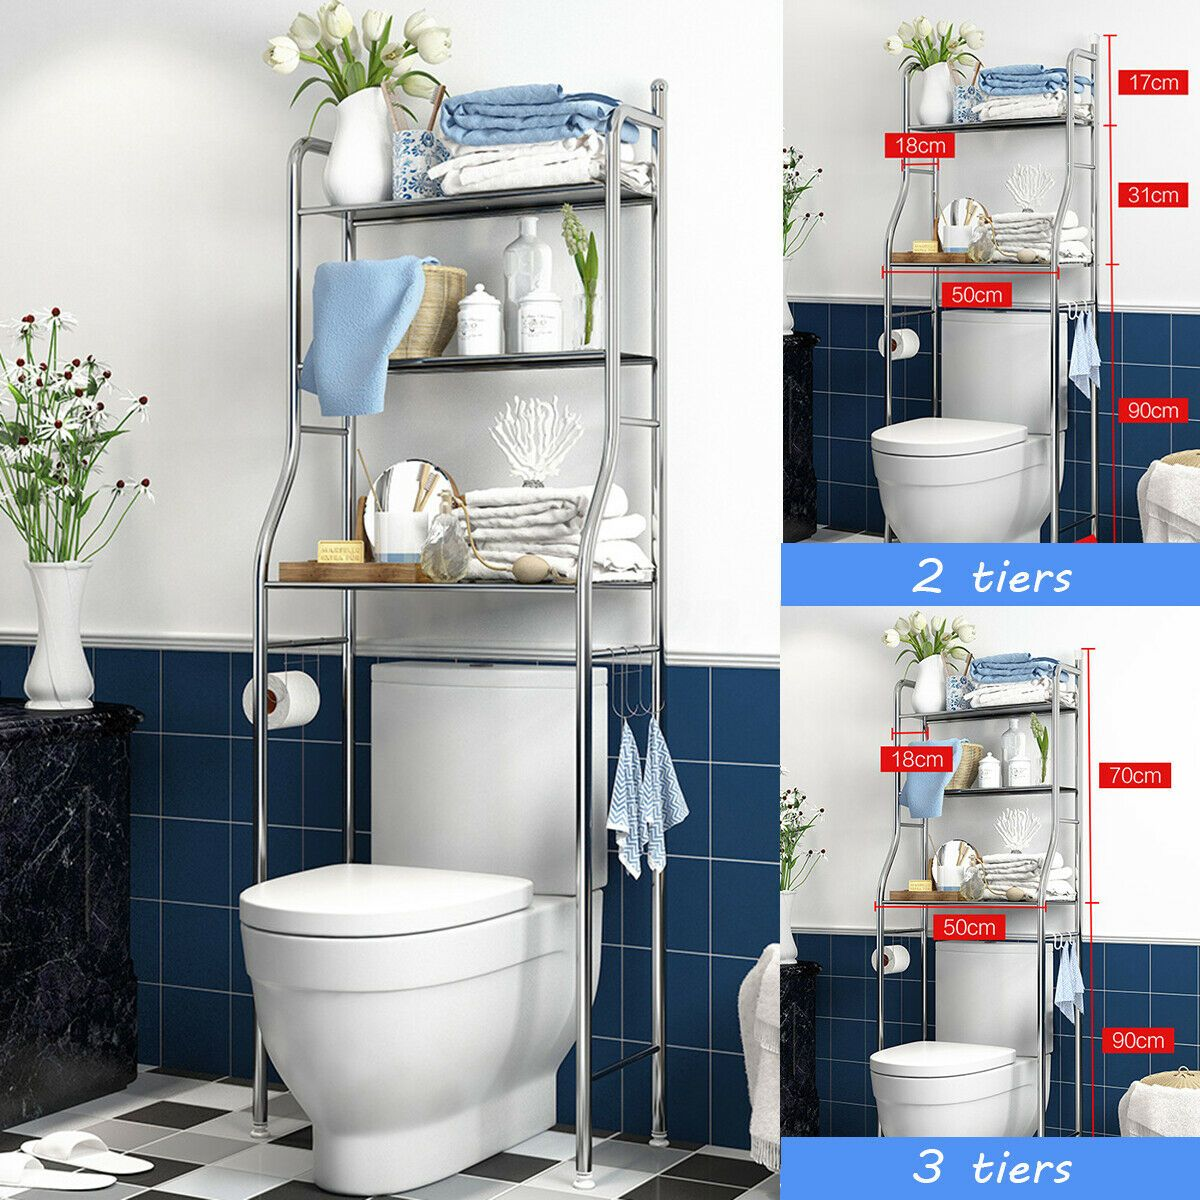 2 3 Towel Storage Rack Over The Toilet Washing Machine Shelf Bathroom 24 89 Cool Bathroom Storag In 2020 Bathroom Organisation Towel Storage Bathroom Storage Racks